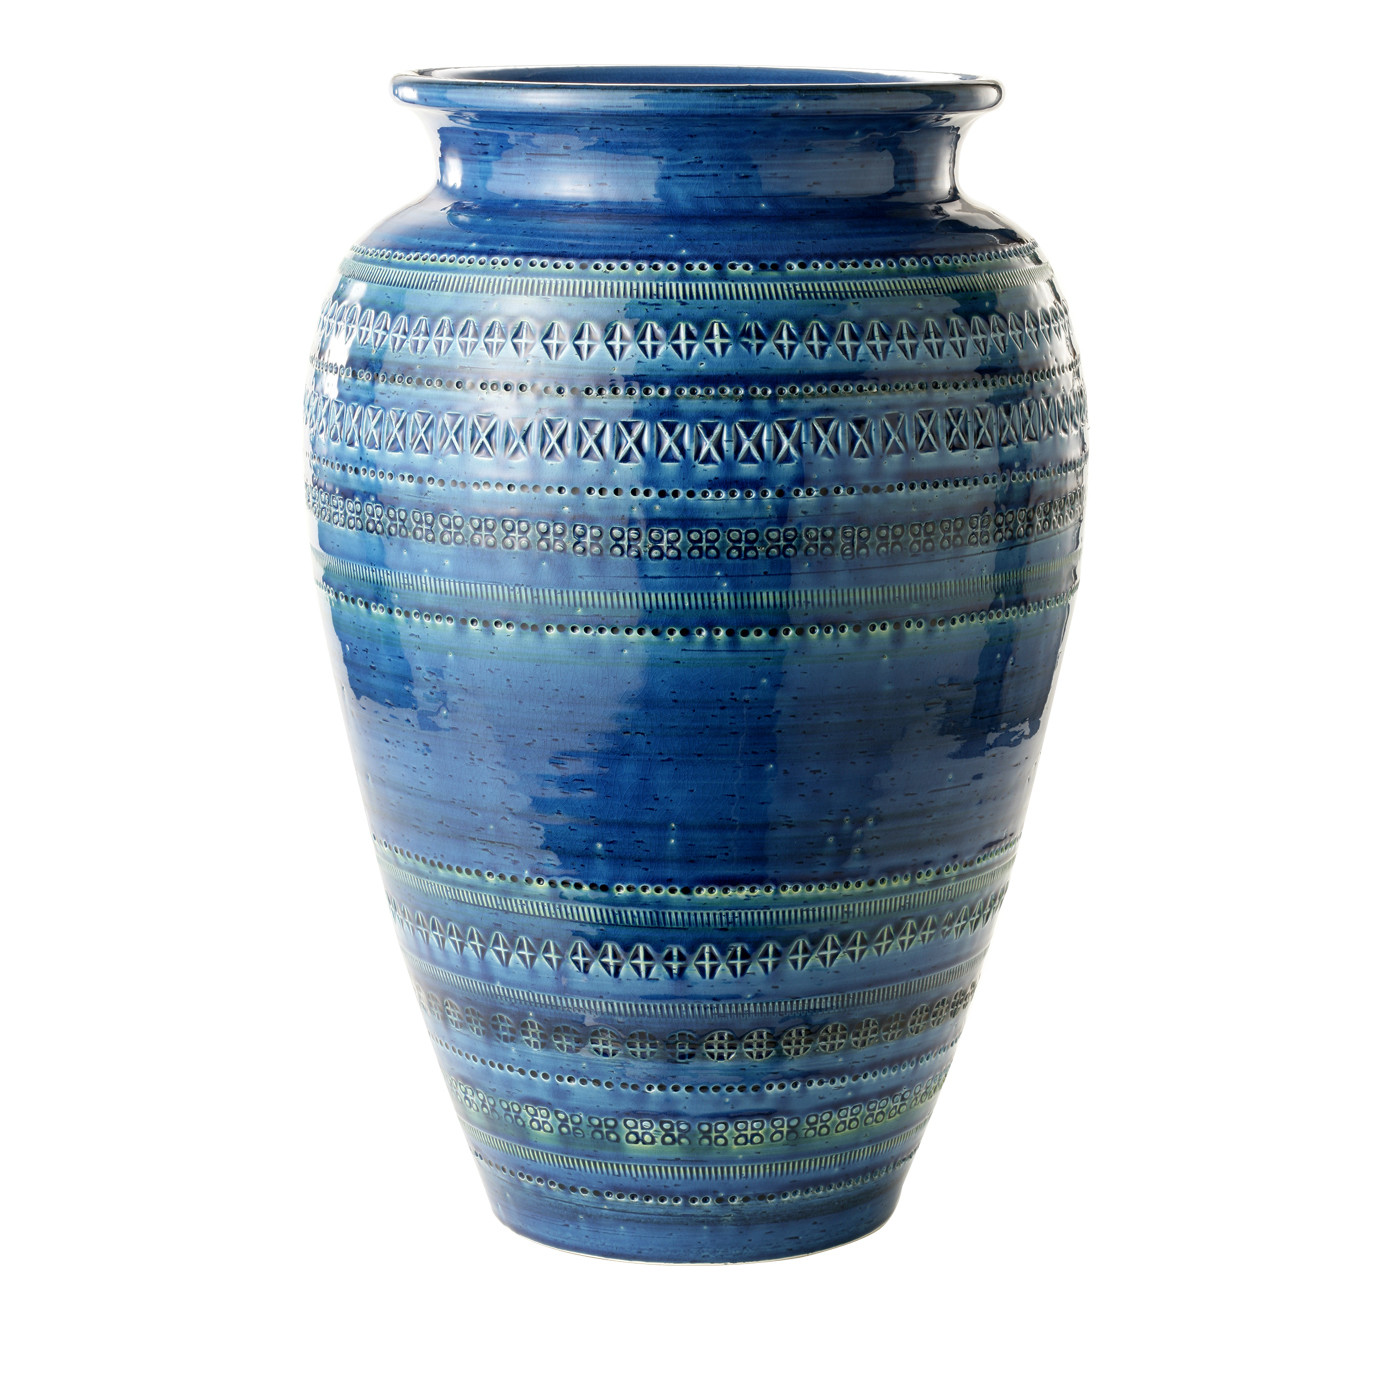 10 Popular Blue and White Decorative Vases 2021 free download blue and white decorative vases of blue umbrella holder by aldo londi shop bitossi ceramiche online with we use profiling cookies to offer our services personalize your experience and send y